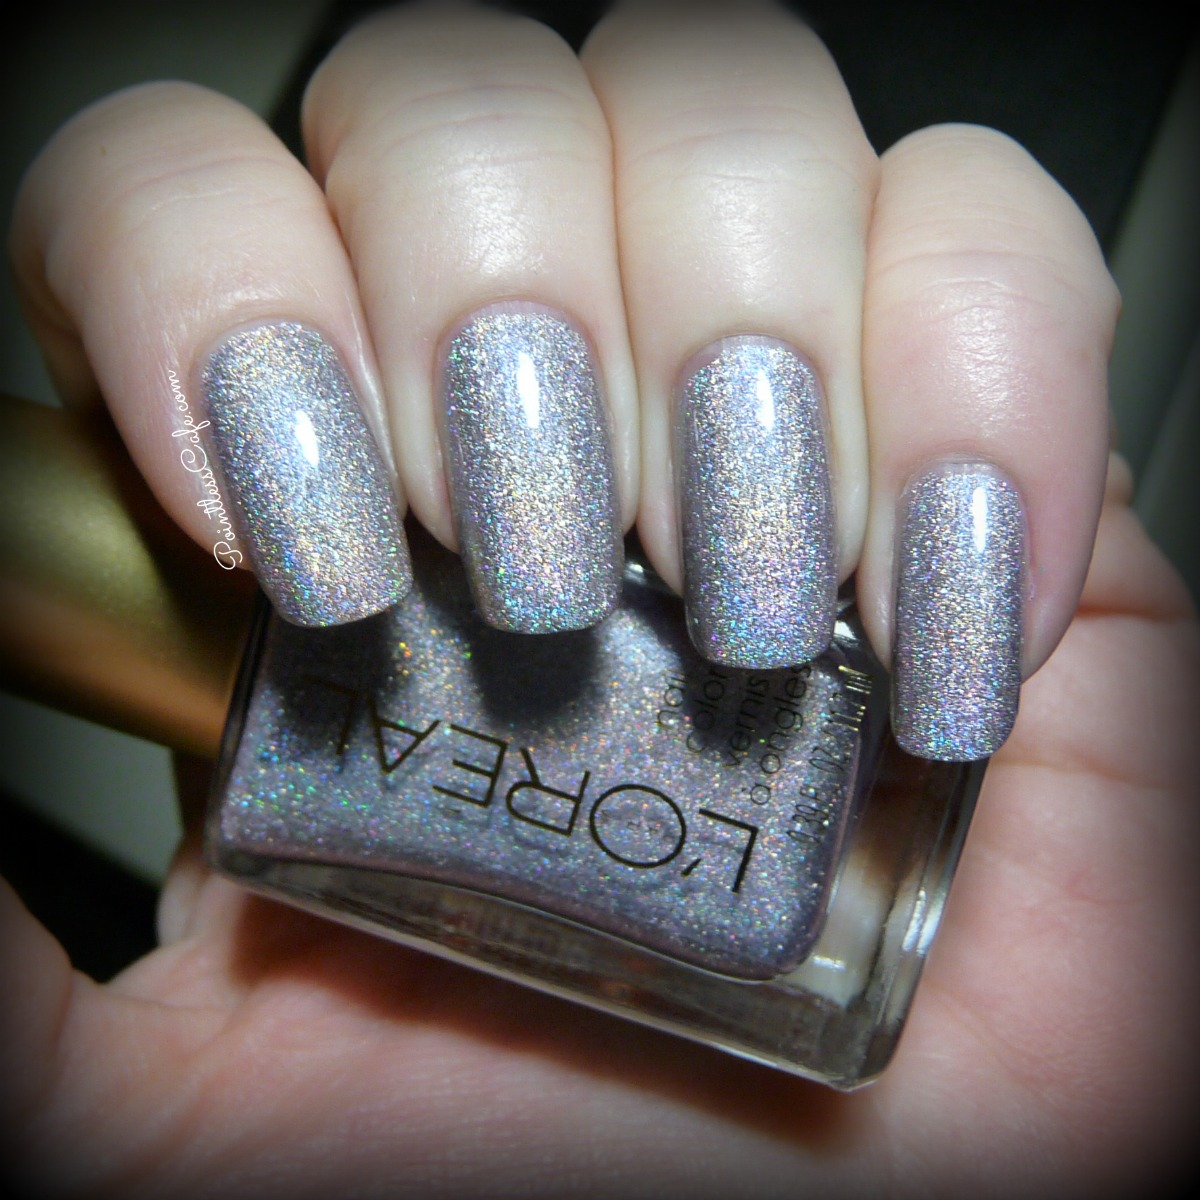 L\'Oreal ColourRiche Masked Affair and Bad Bad Grey   Pointless Cafe